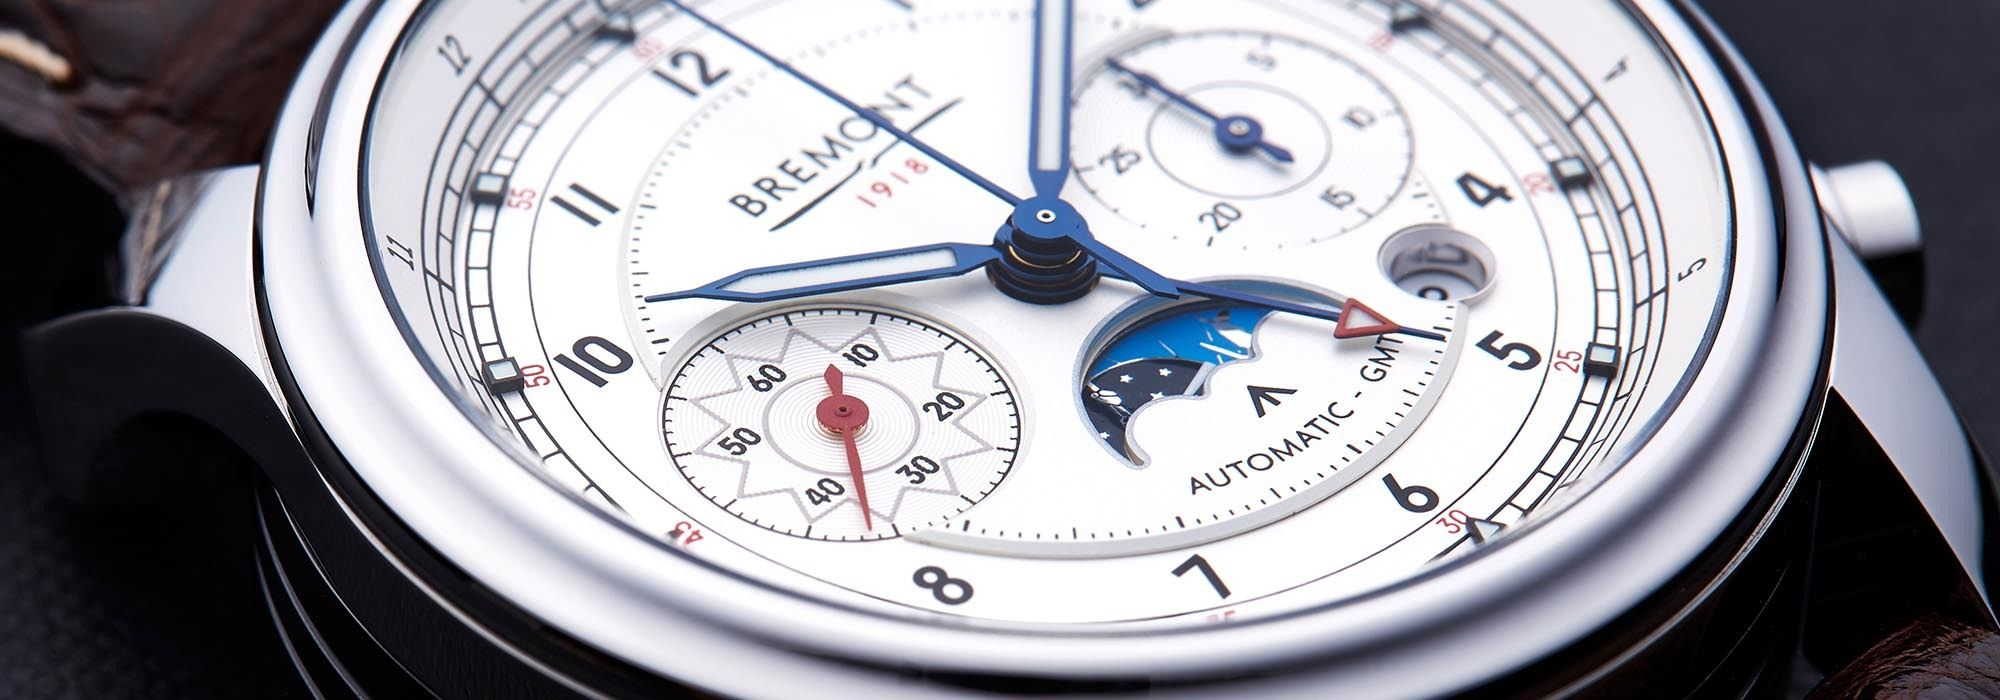 Limited Edition Bremont Watches